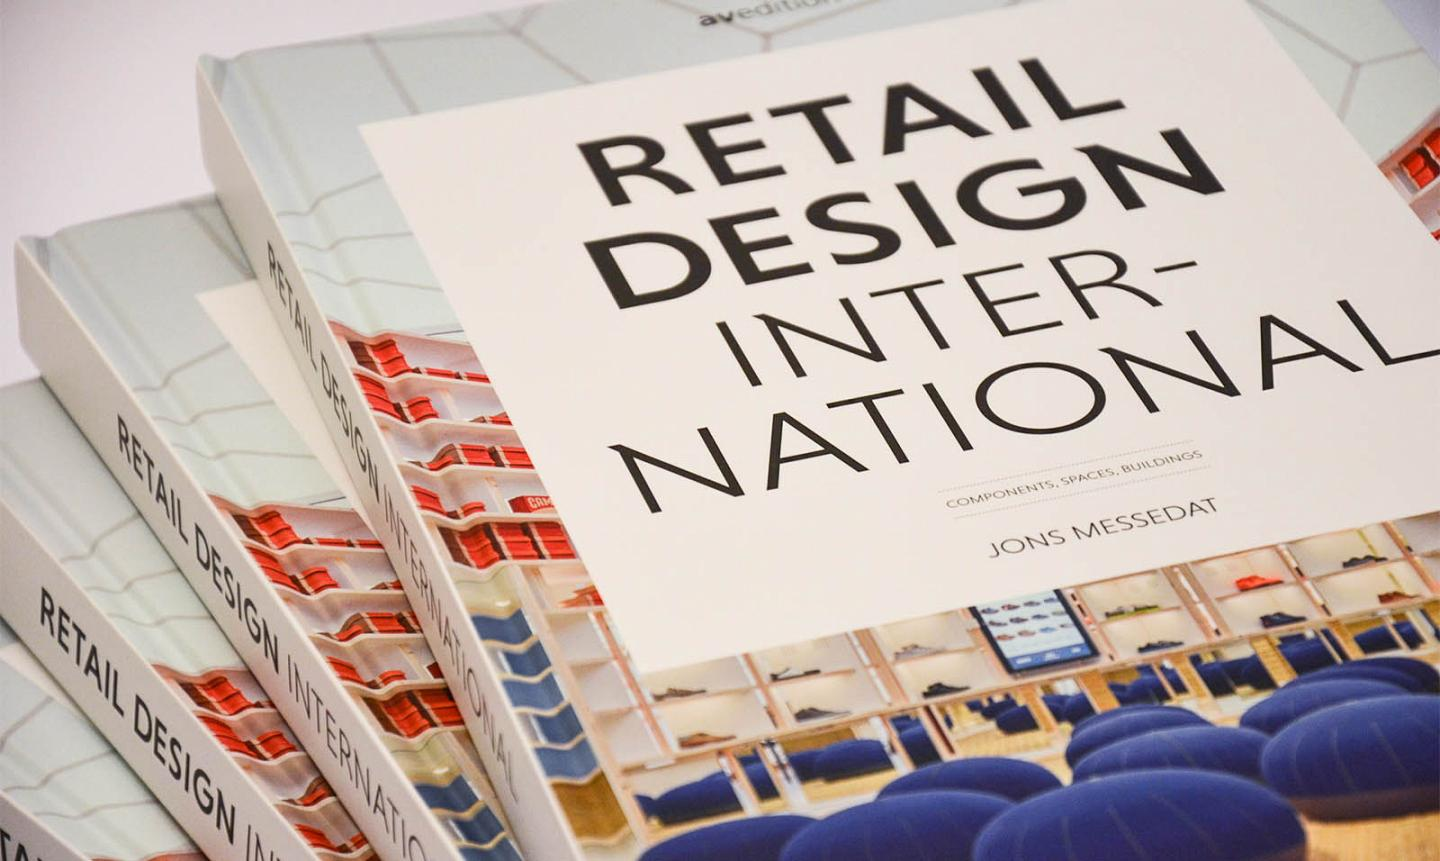 Retail Design International Buch Cover